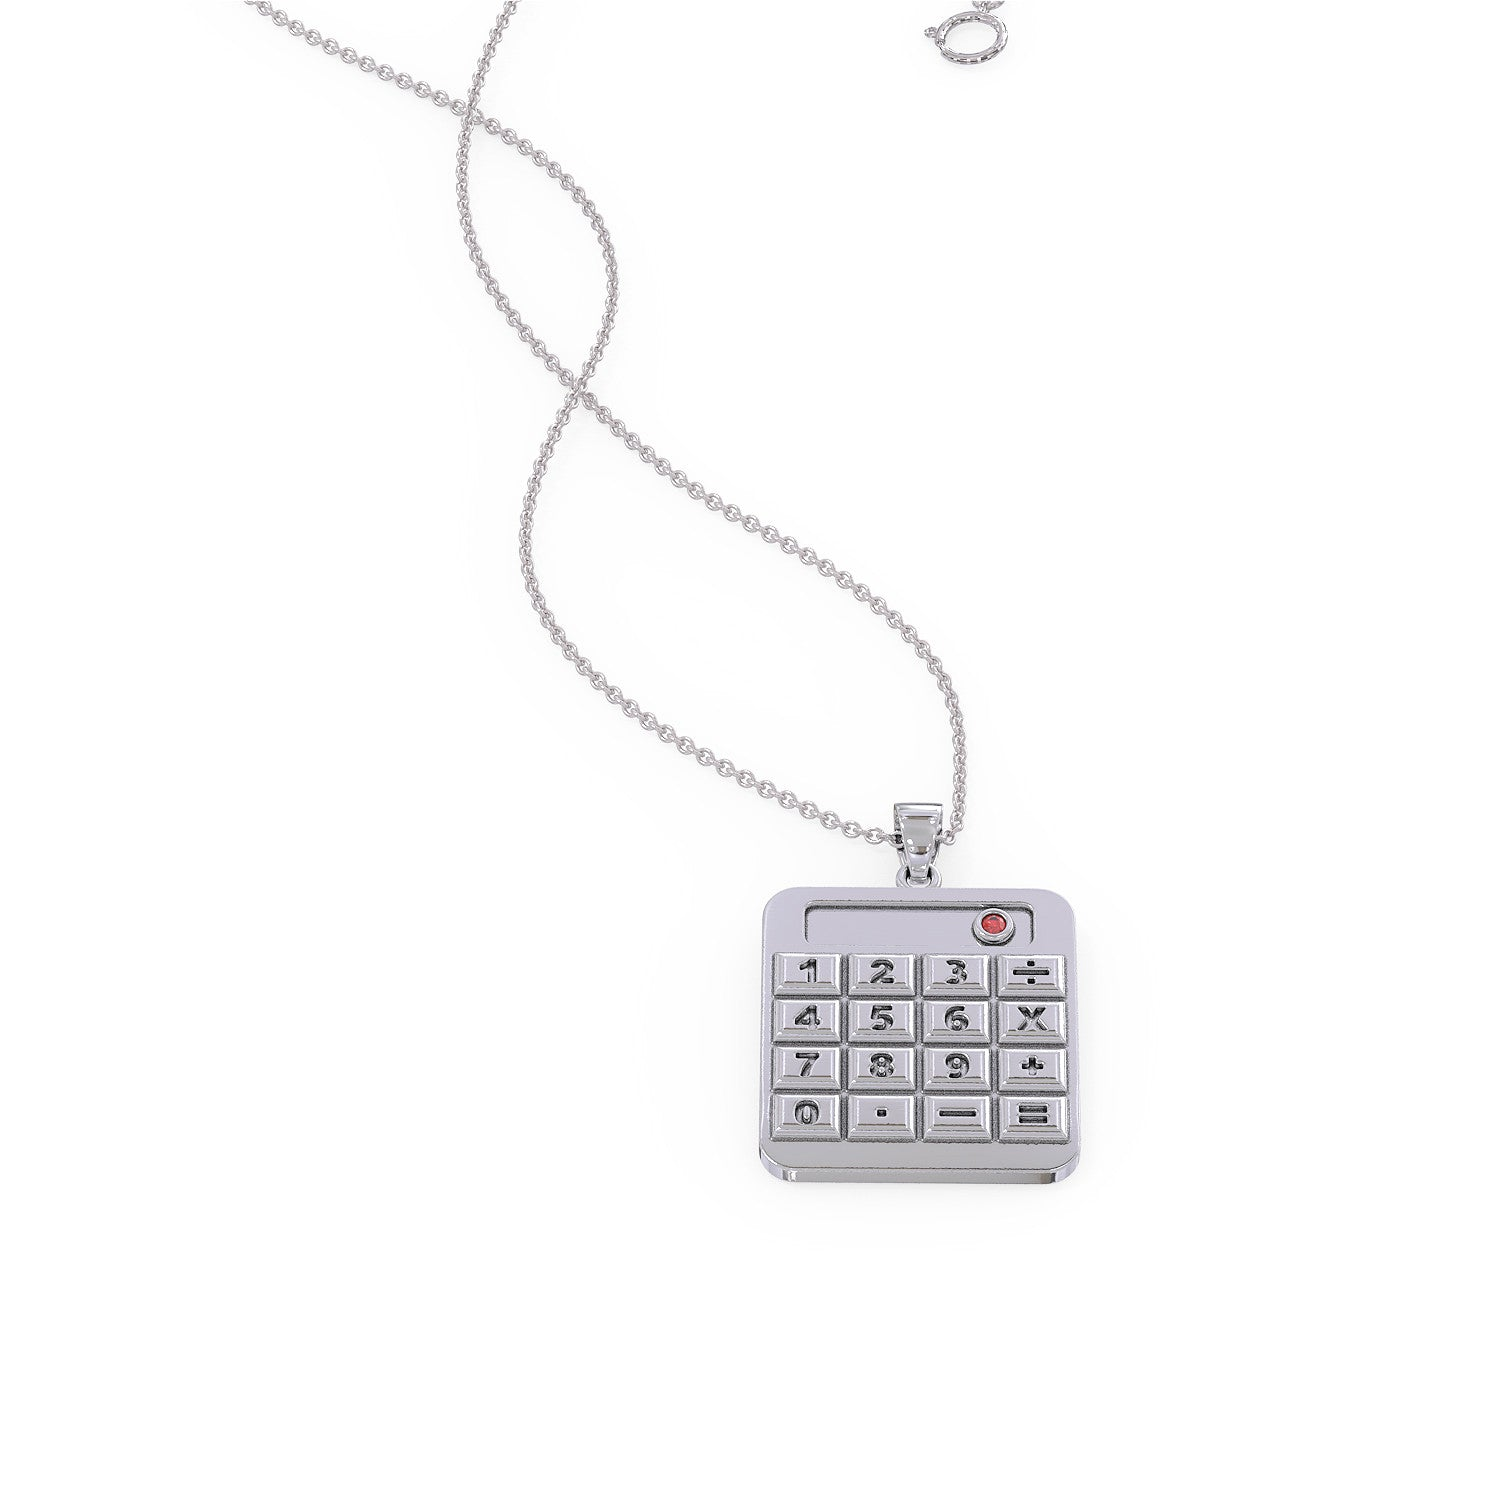 Accountant Birthstone Calculator Necklace